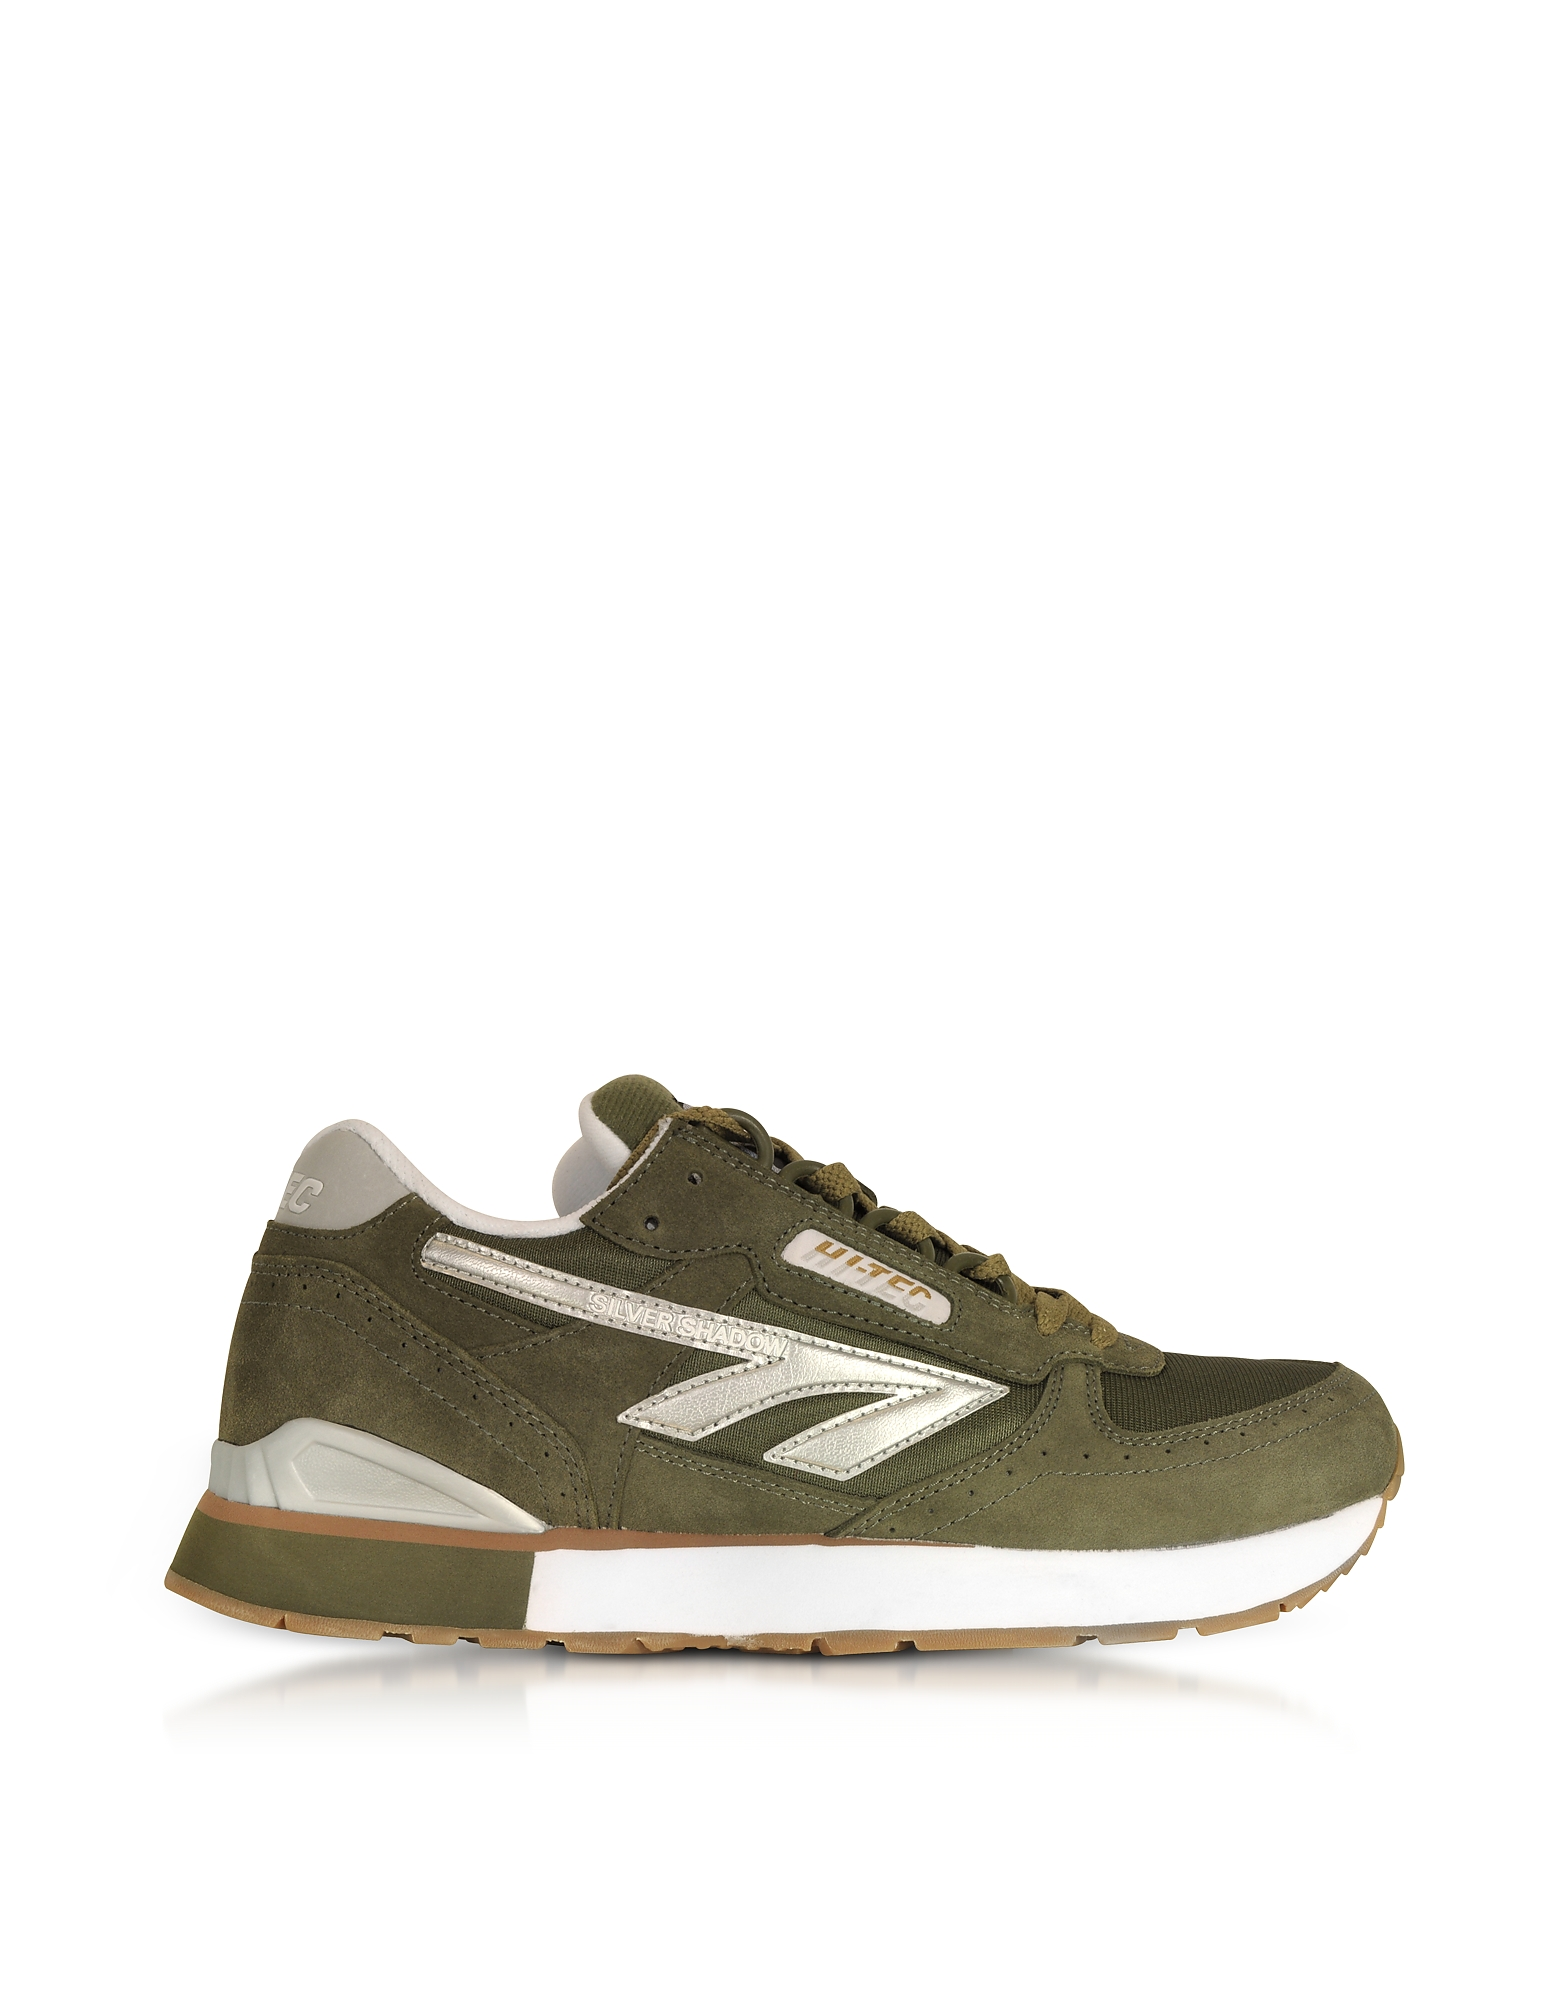 Hi-Tec Shoes, Silver Shadow Olive/Silver/White Mesh and Suede Men's Trainers